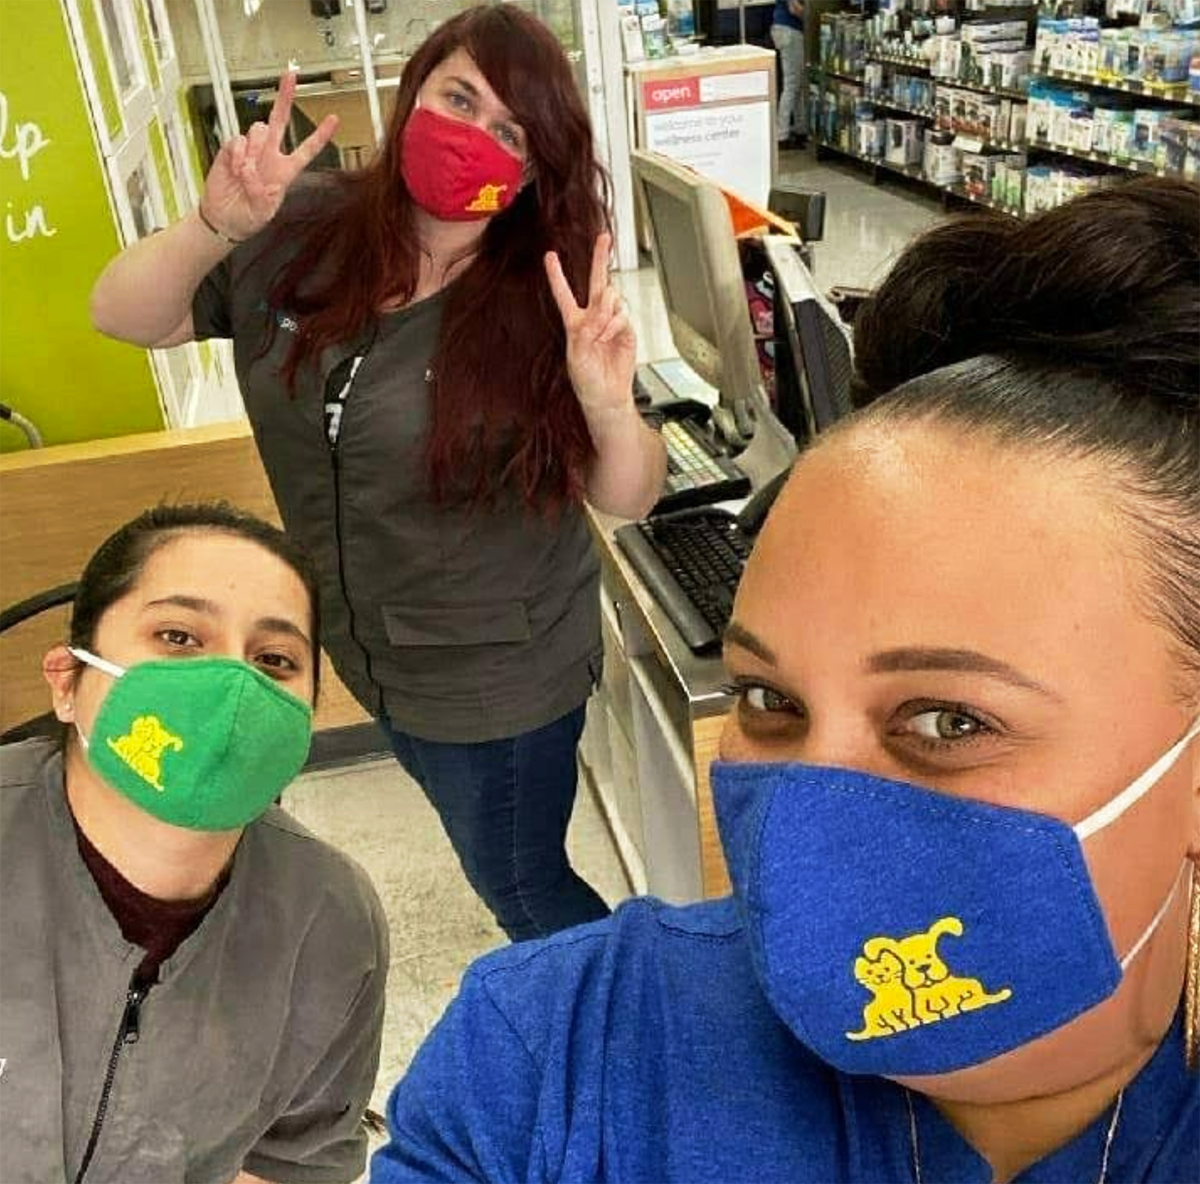 Some Petco employees made masks out of their old uniforms.